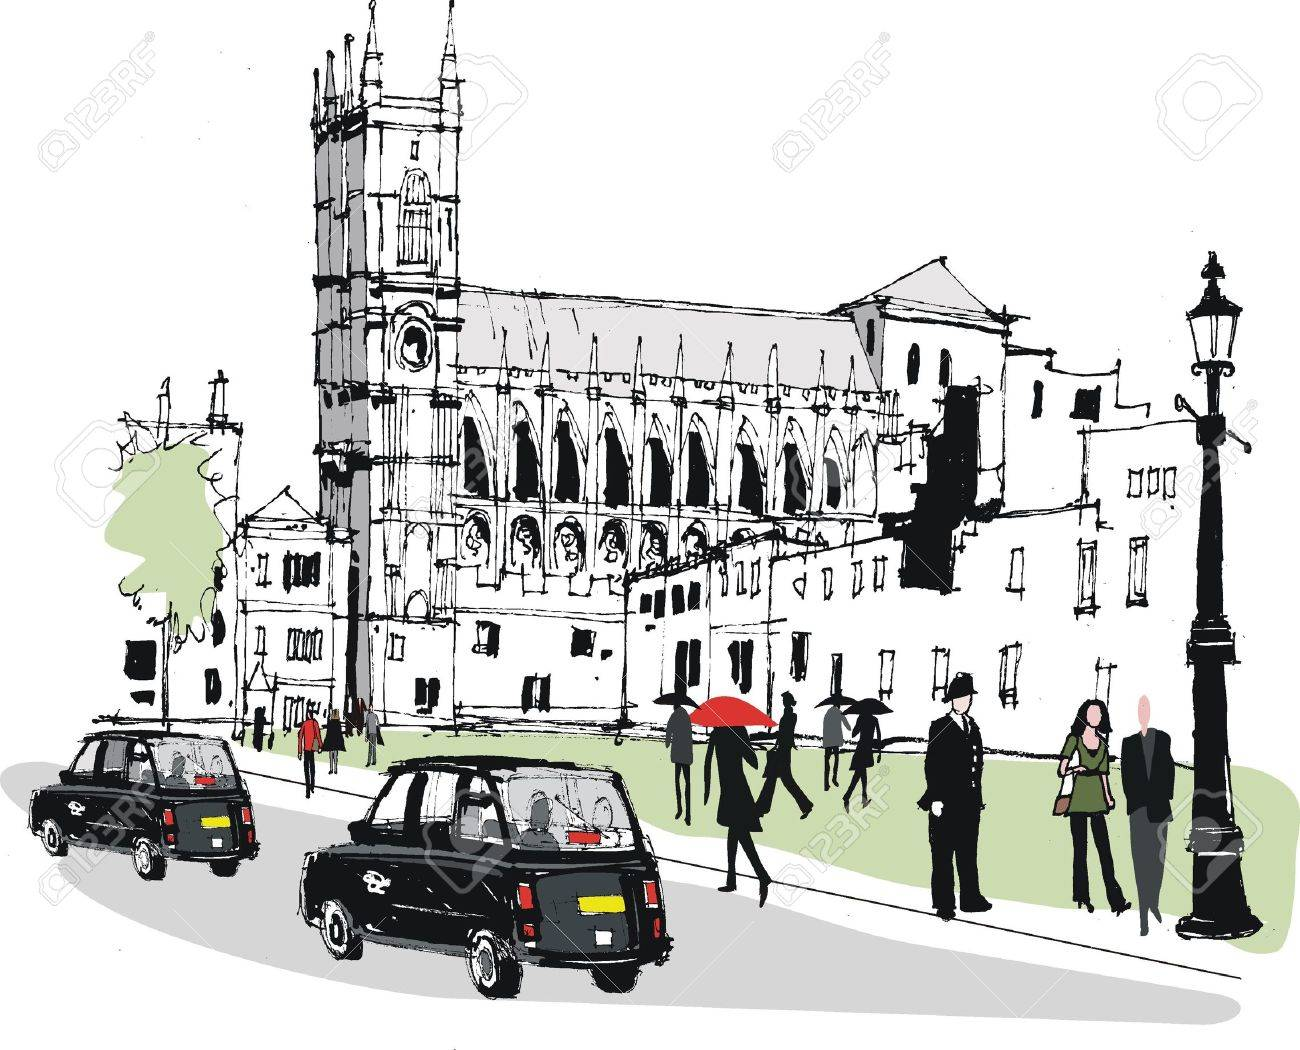 Vector illustration of historic Westminster Abbey London Stock Vector - 11674421